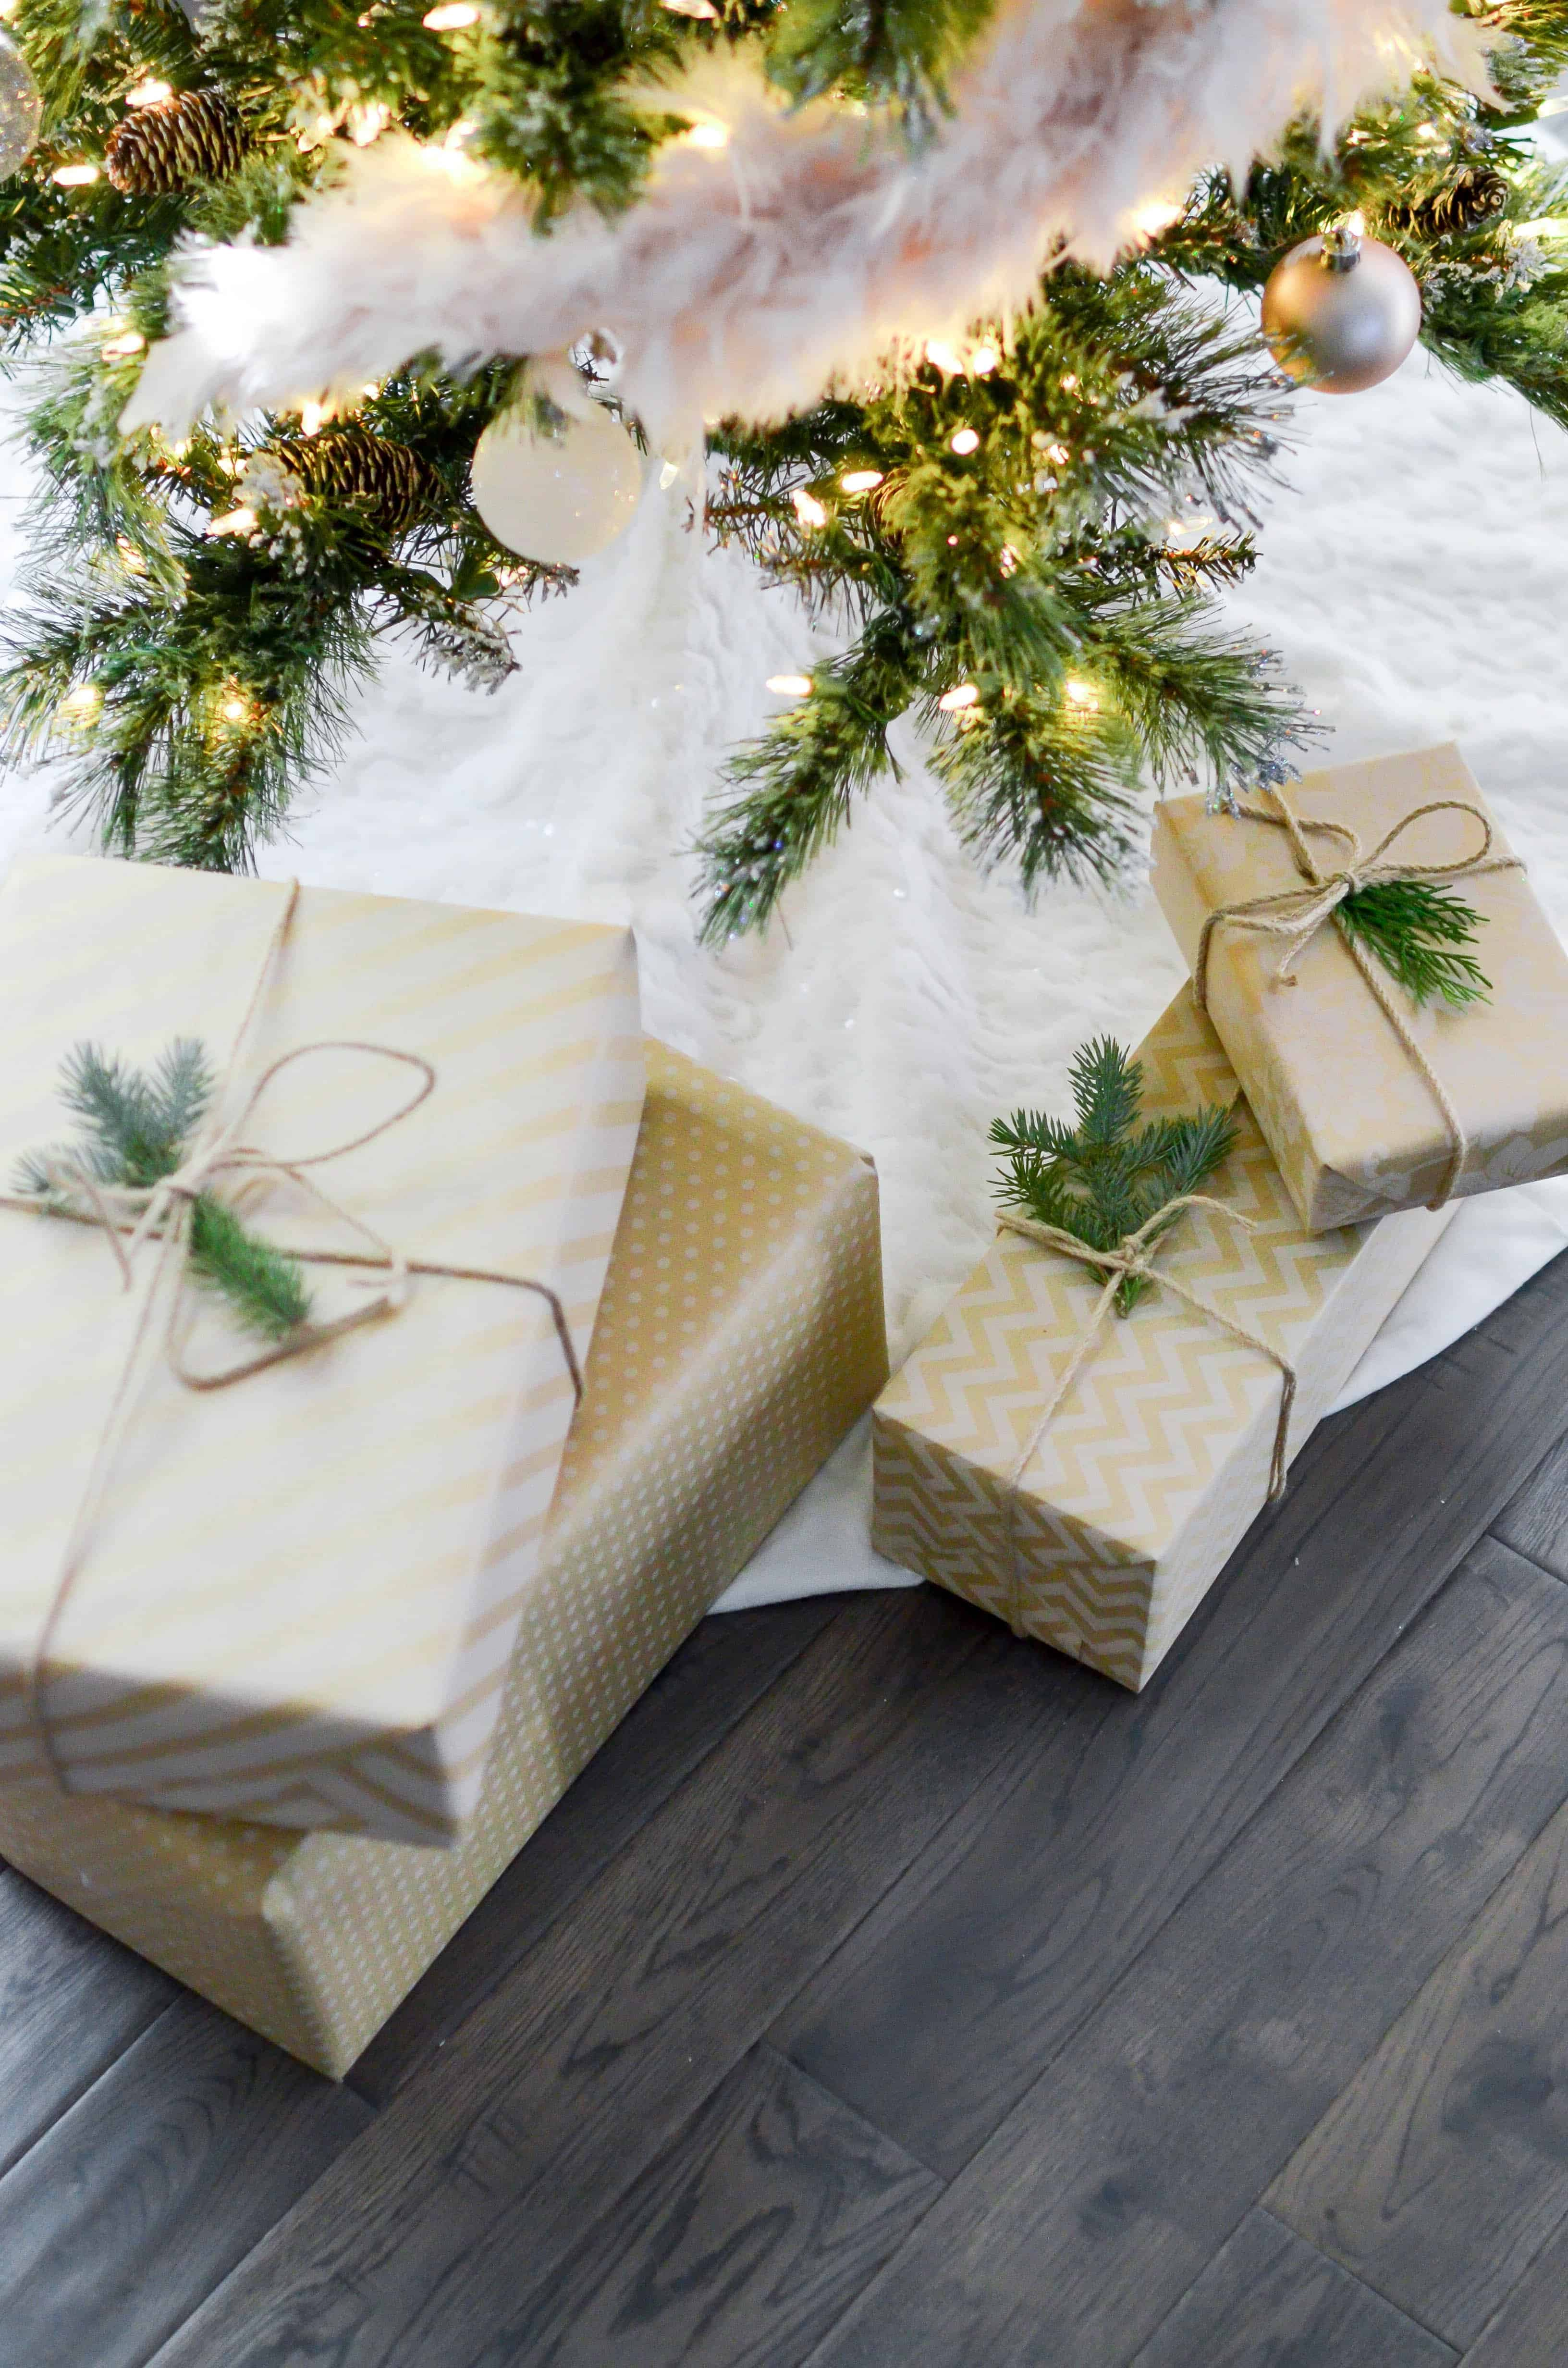 How to Shop for Gifts on a Budget